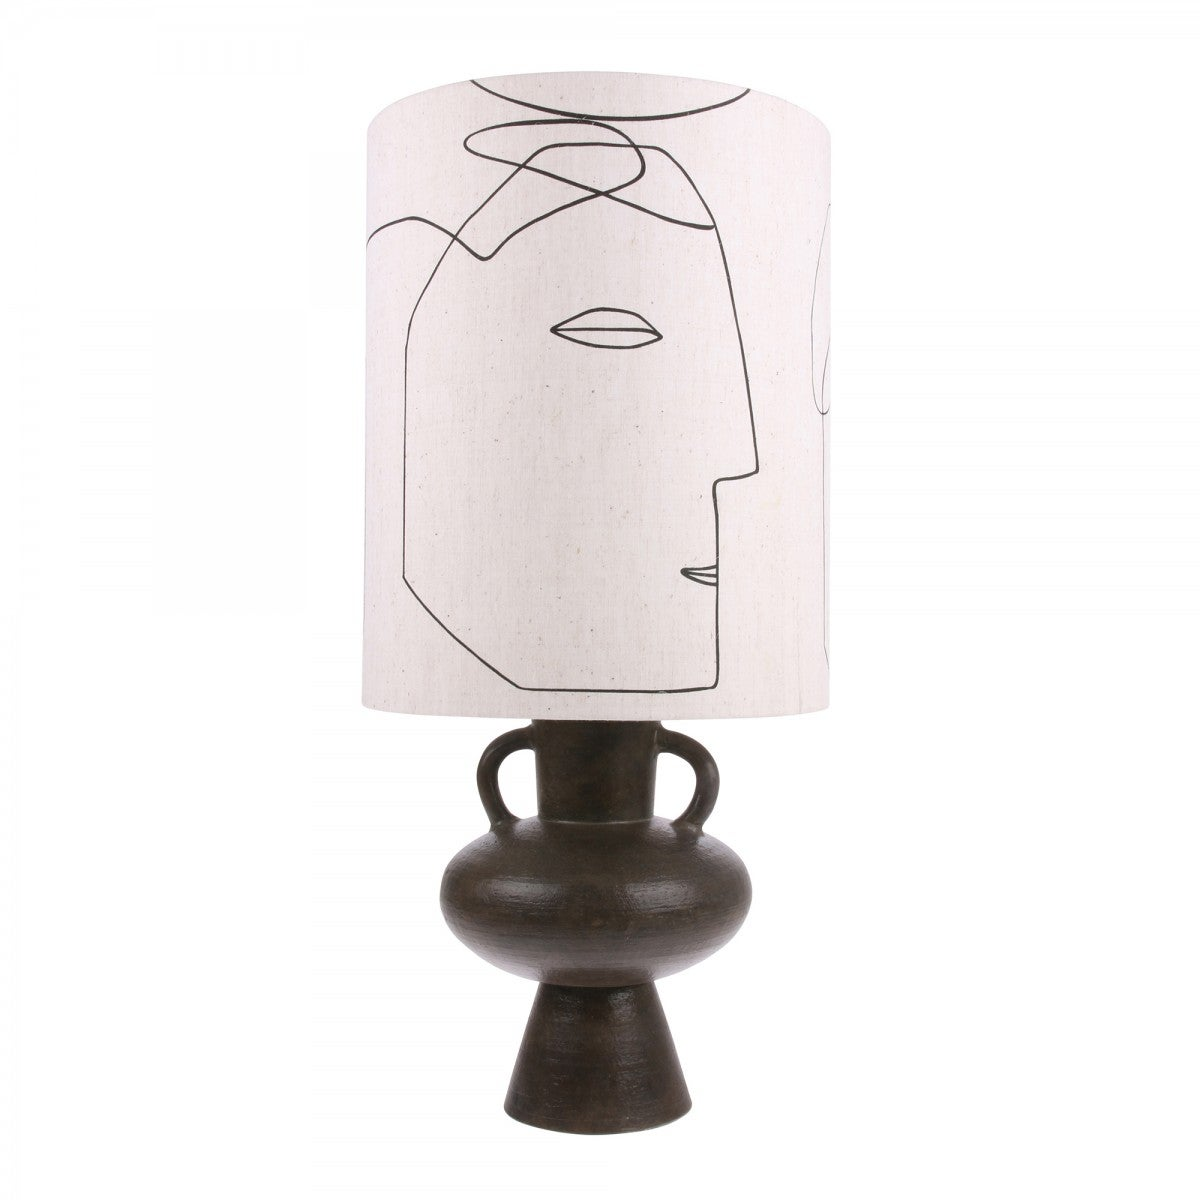 faces-table-lamp-01